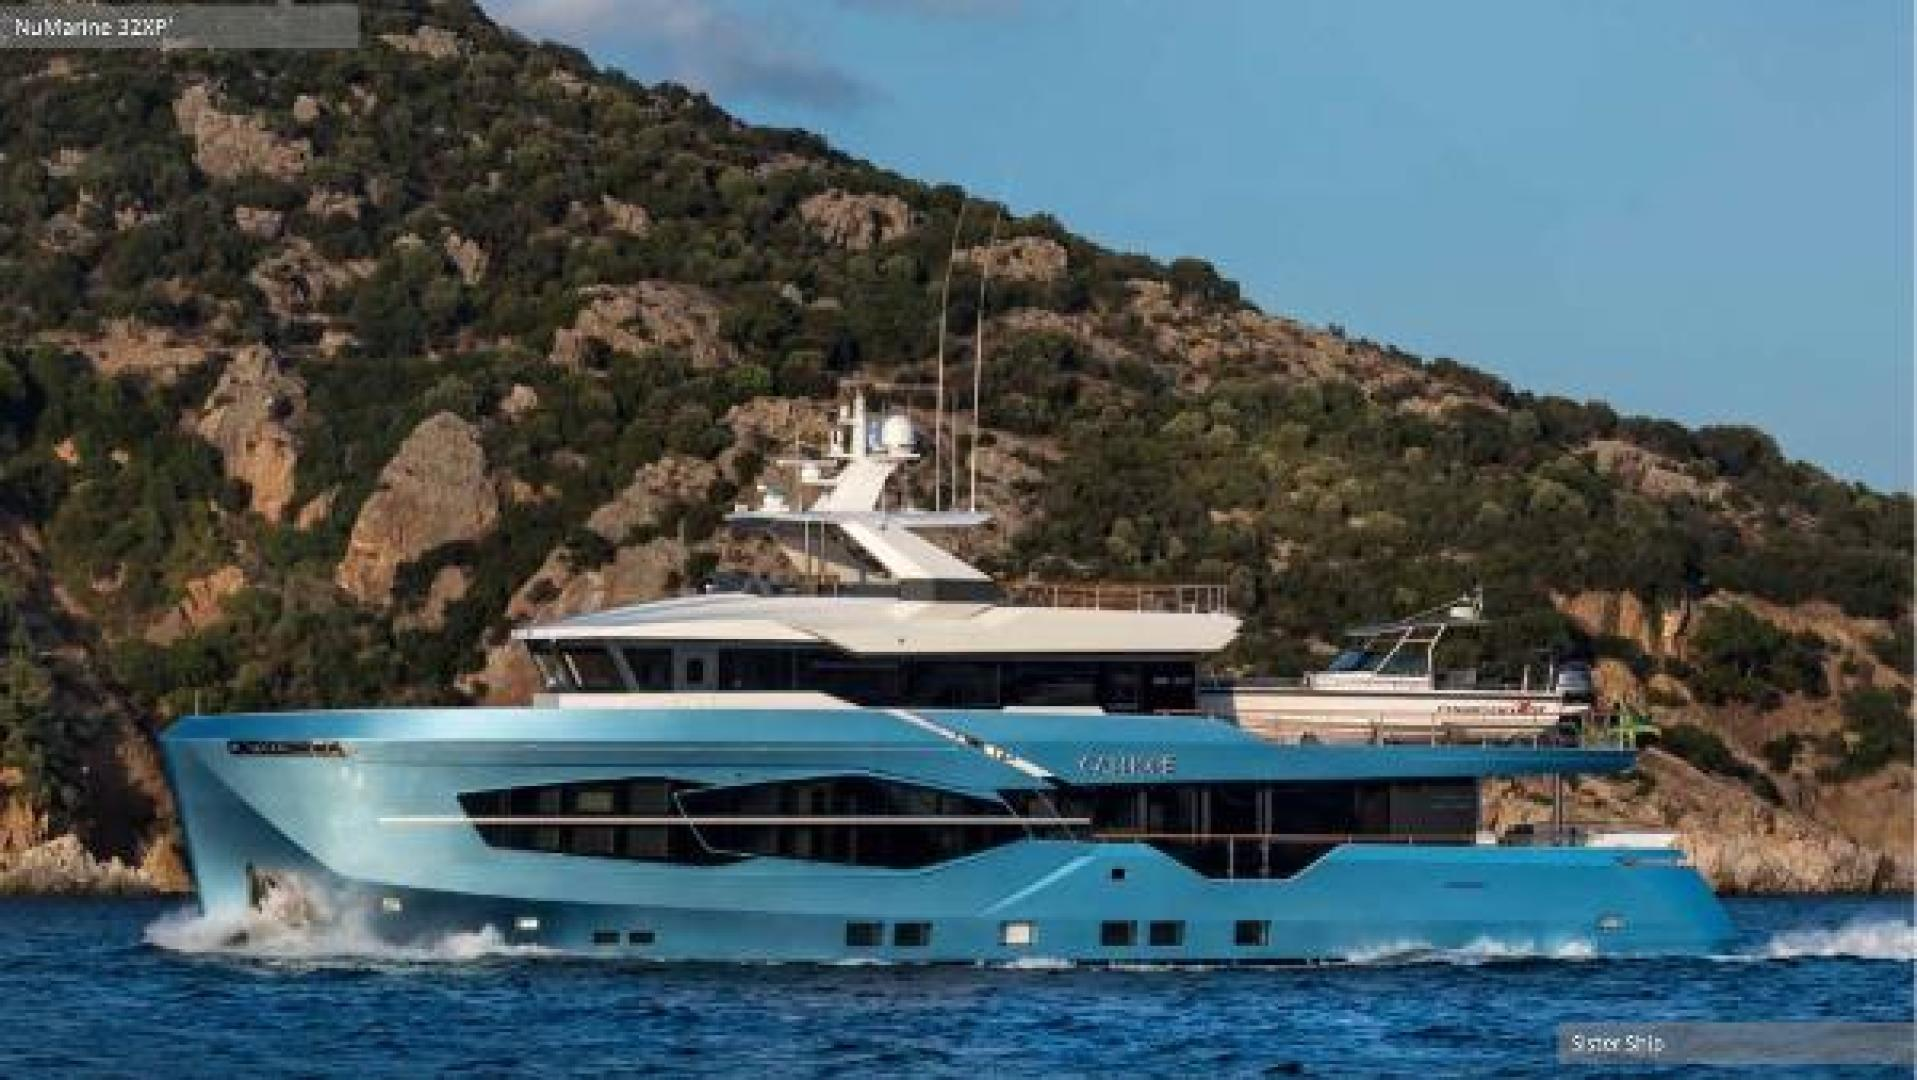 Picture Of: 105' Numarine 32XP 2020 Yacht For Sale | 1 of 1